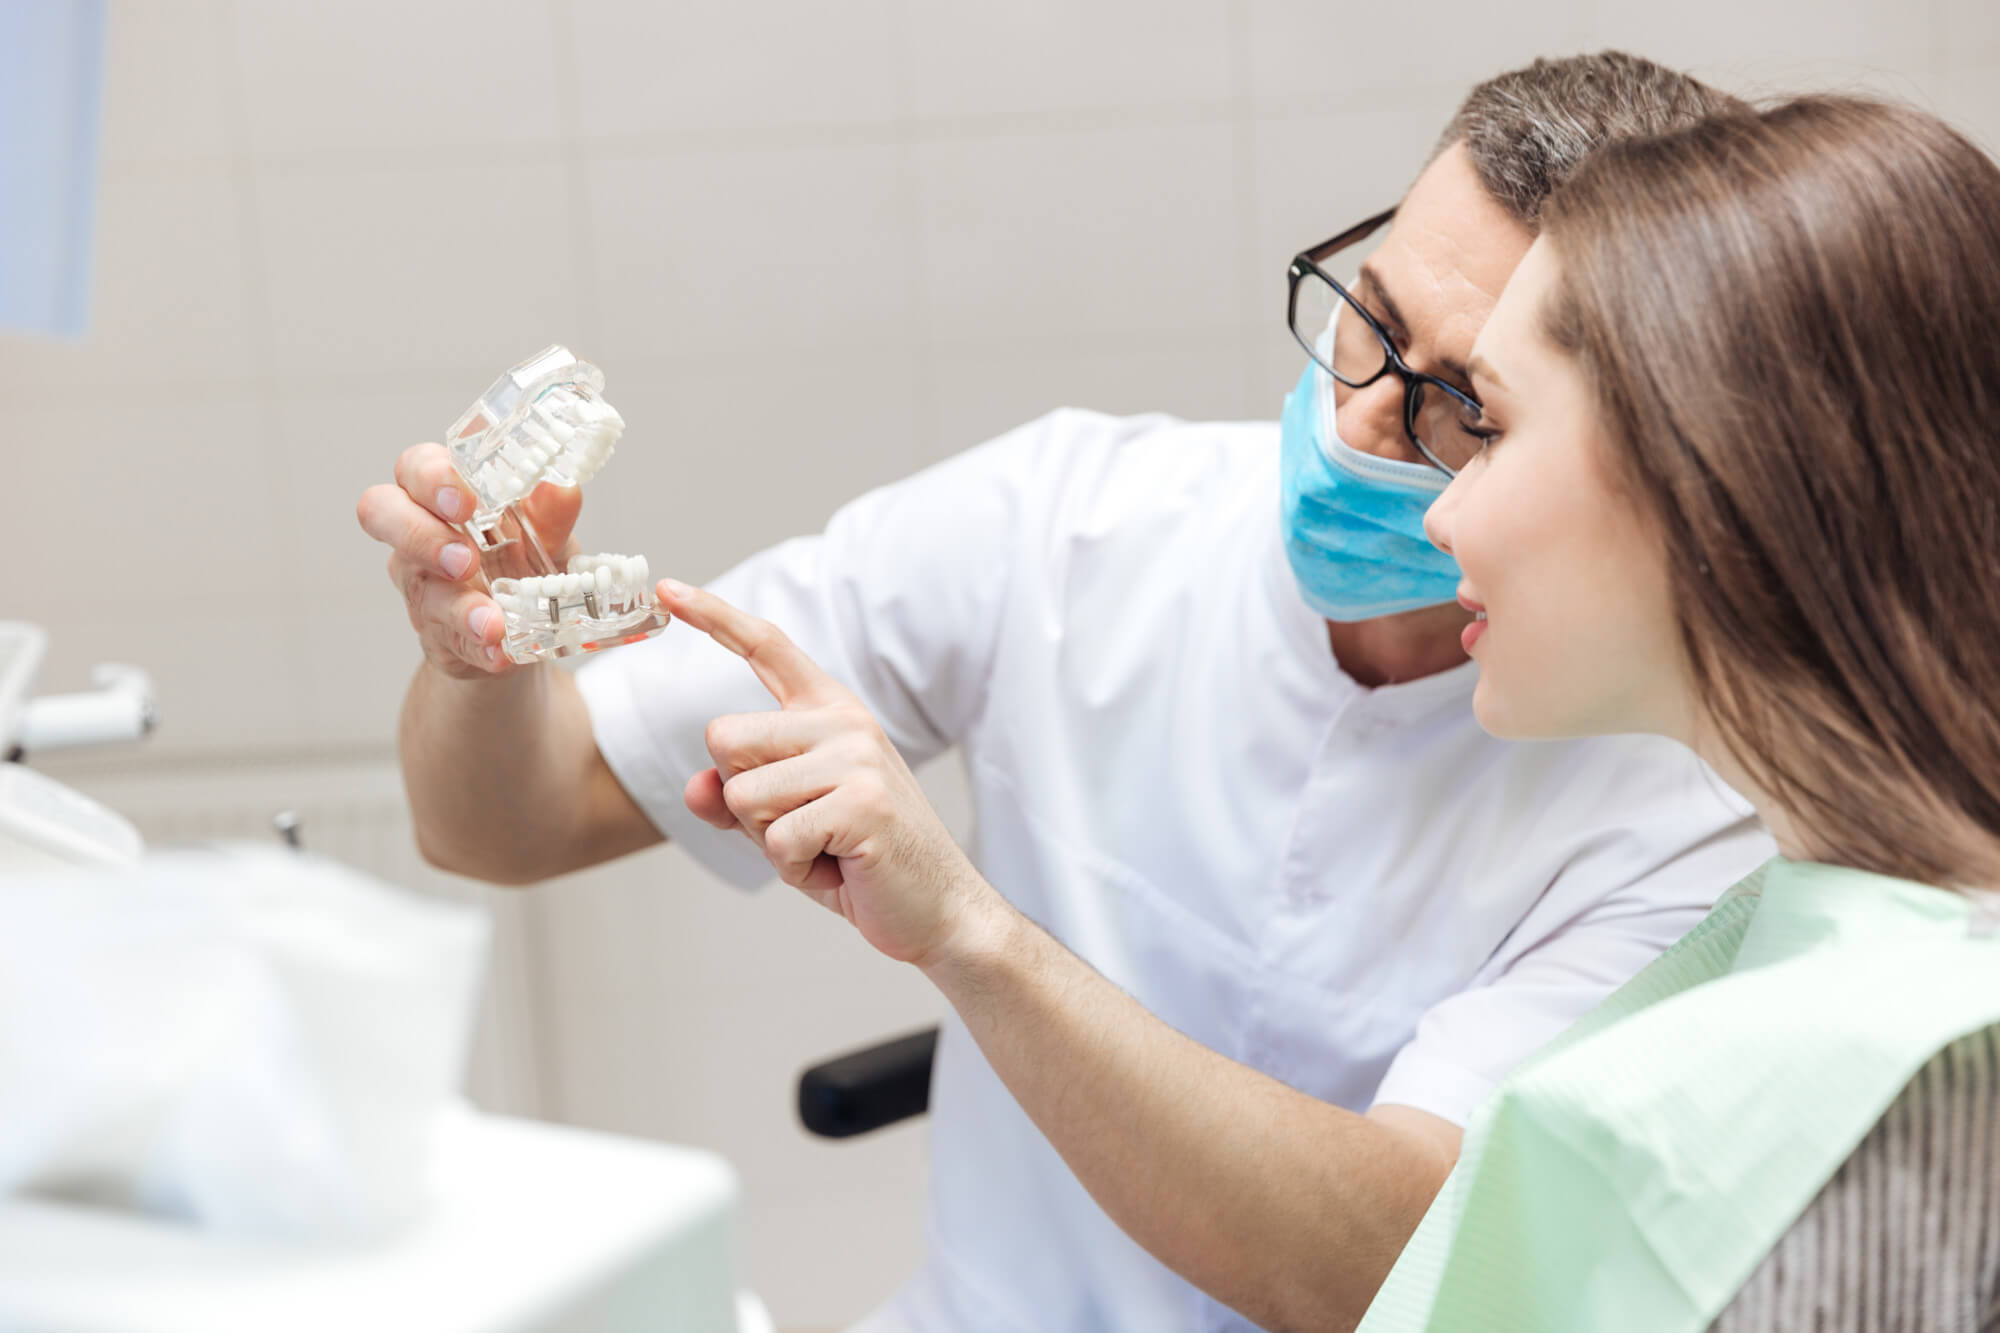 what are dental mini implants